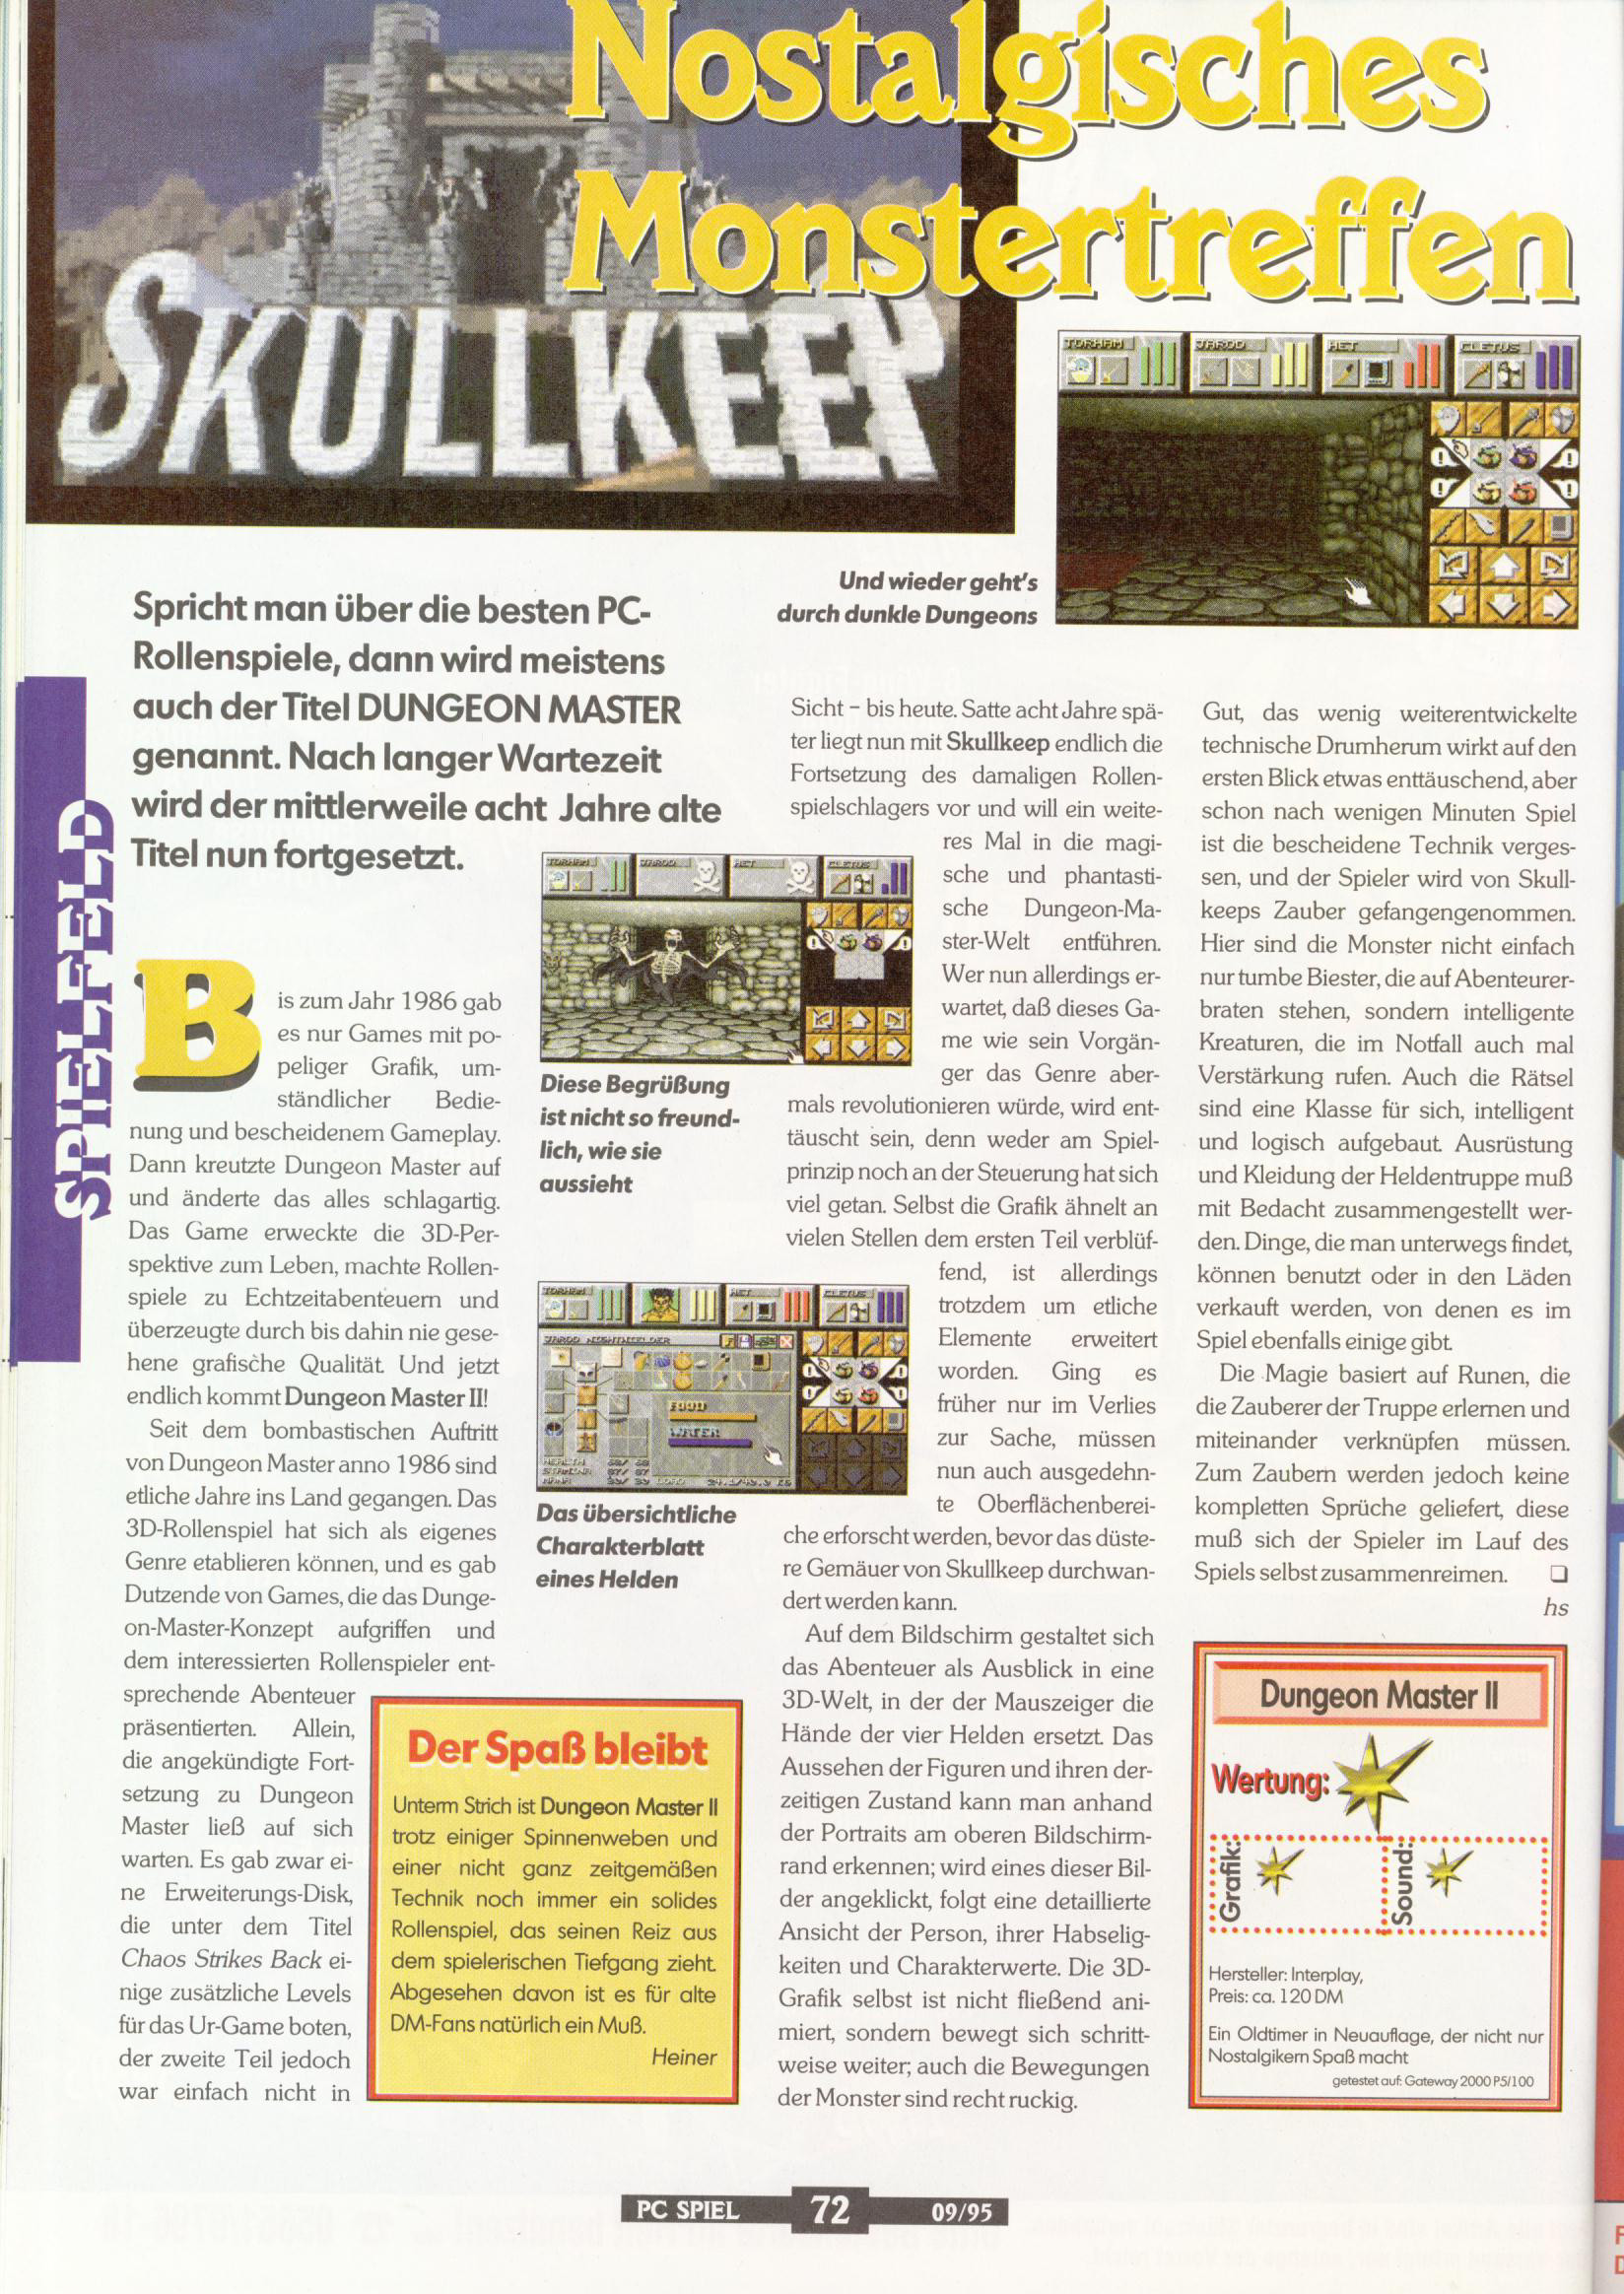 Dungeon Master II for PC Review published in German magazine 'PC Spiel', September 1995, Page 72